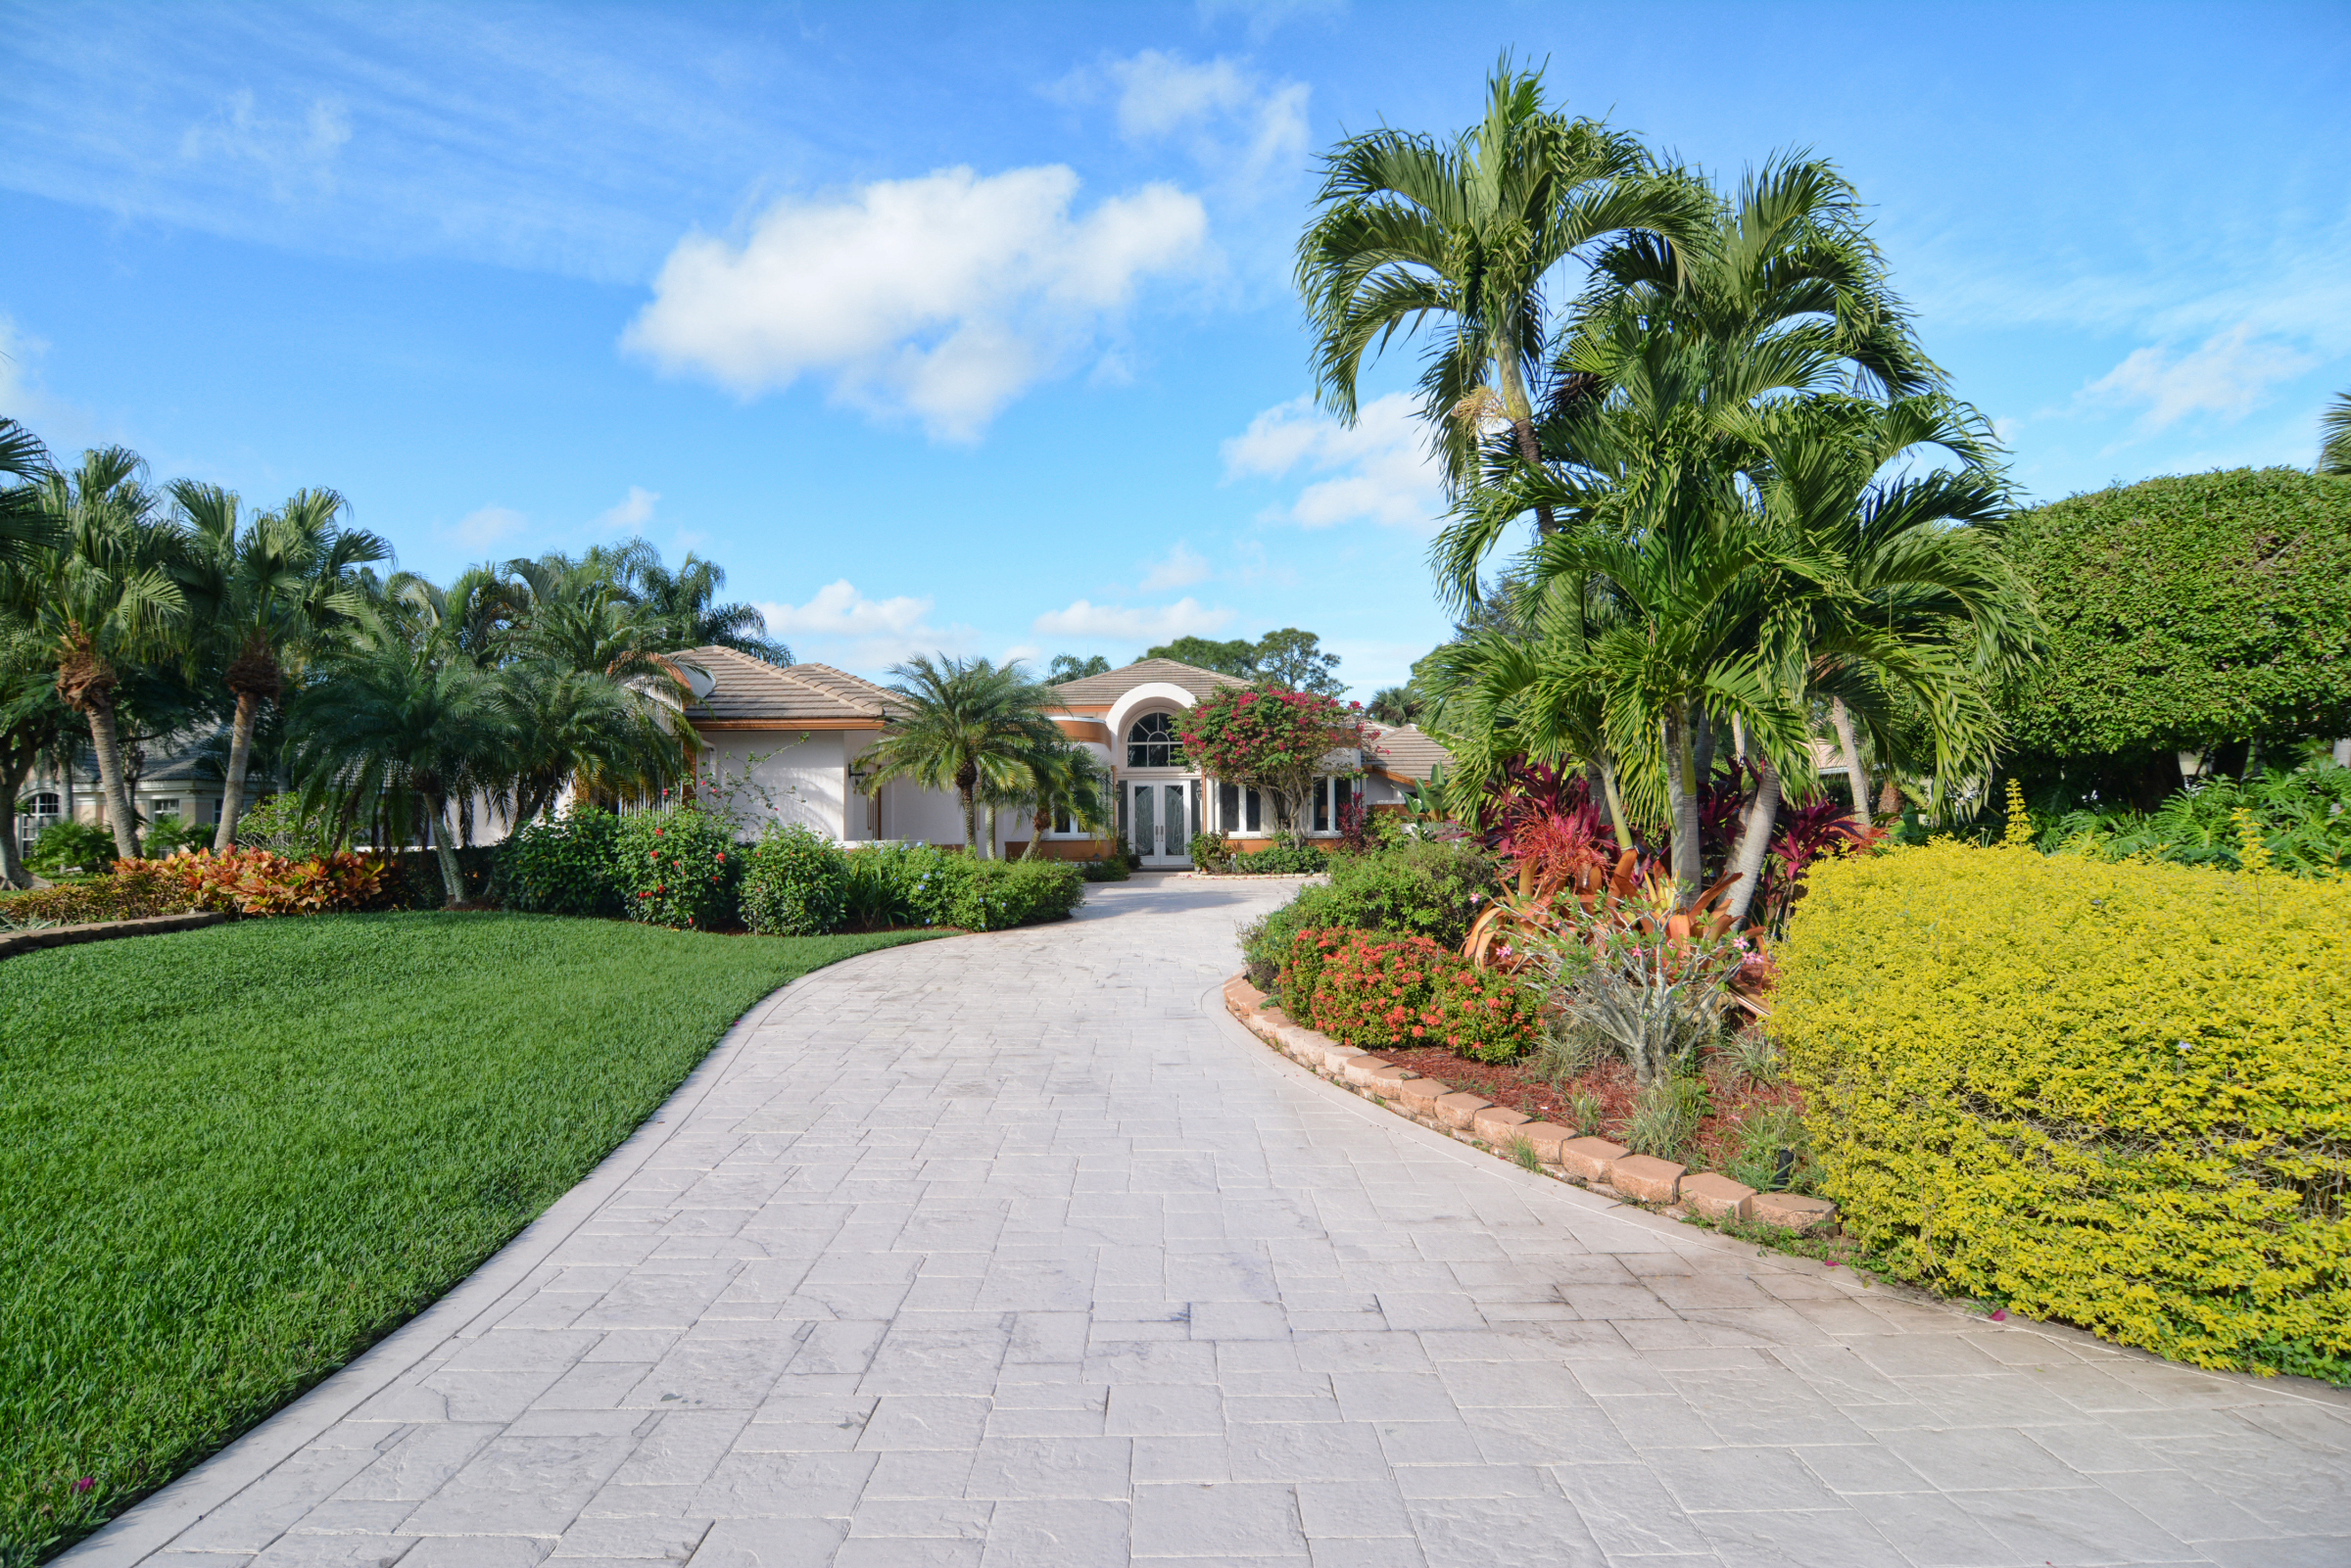 Single Family Home for Sale at 8179 Lakeview Drive West Palm Beach, Florida, 33412 United States